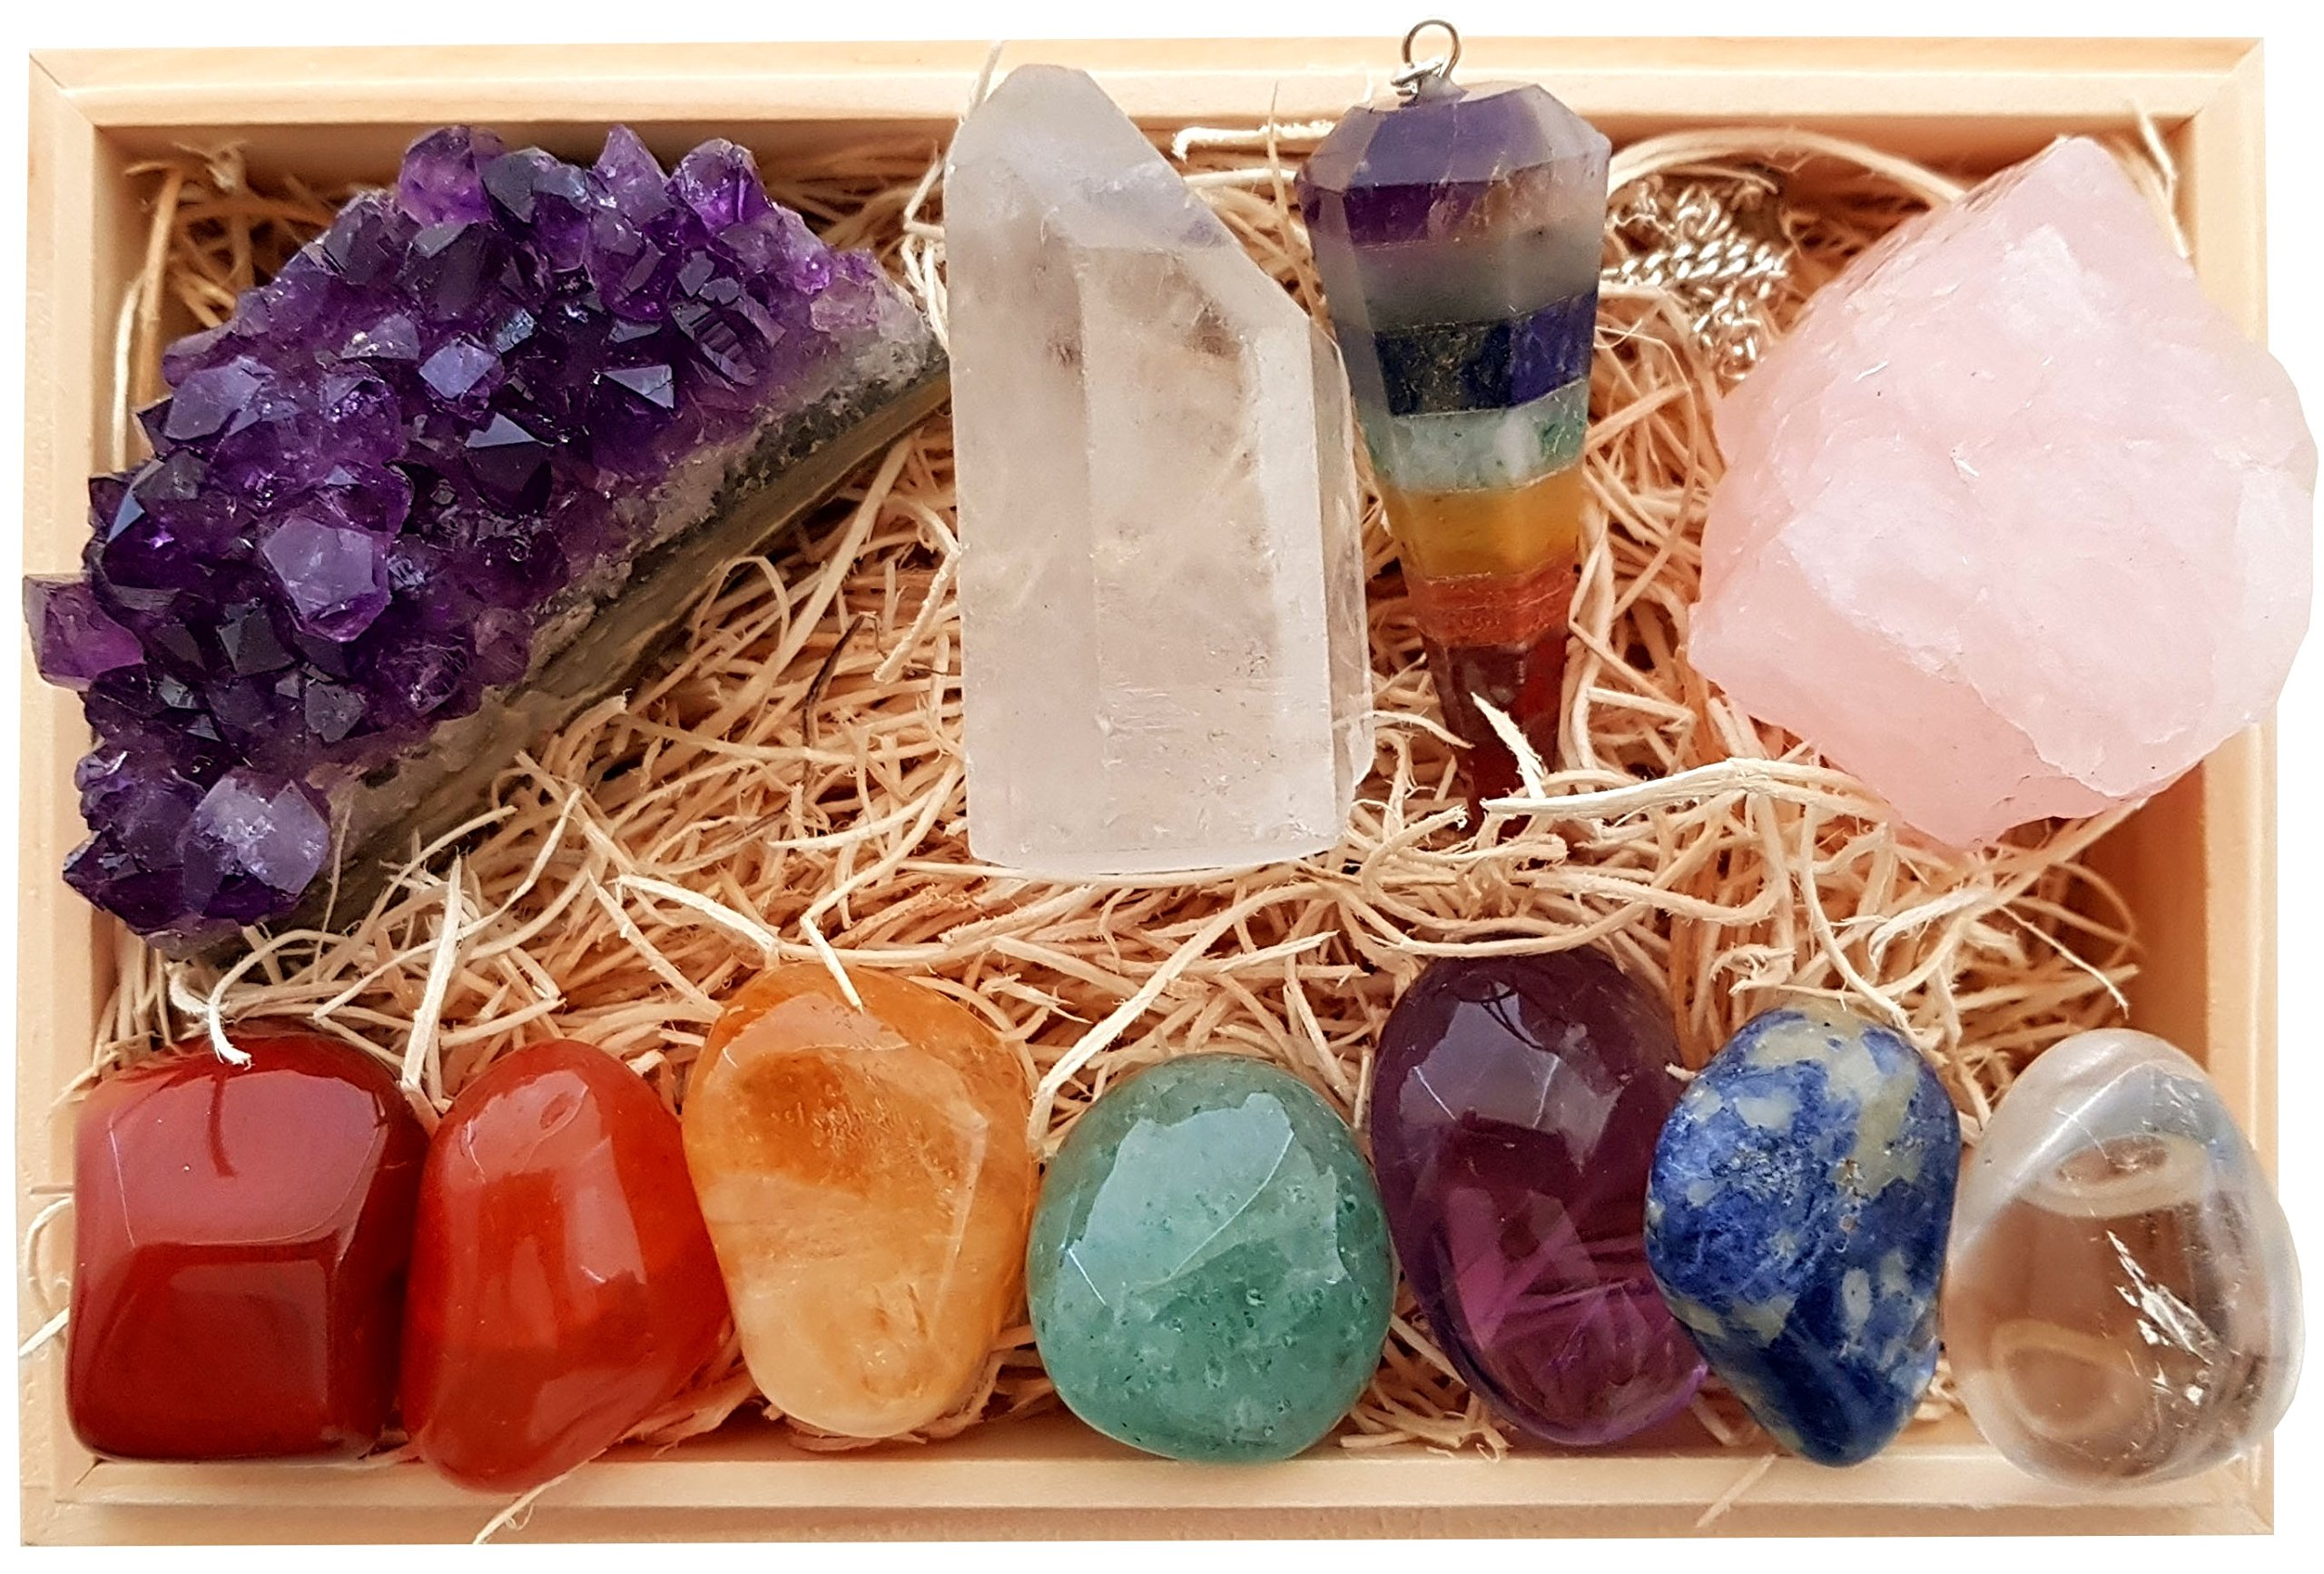 Premium Healing Crystals Gift Kit in Wooden Box - 7 Chakra Set Tumbled Stones, Rose Quartz, Amethyst Cluster, Crystal Points, Chakra Pendulum + 82 Page E-Book + 20x6 Reference Guide Poster, Gift Ready by ZATNY CRYSTALS